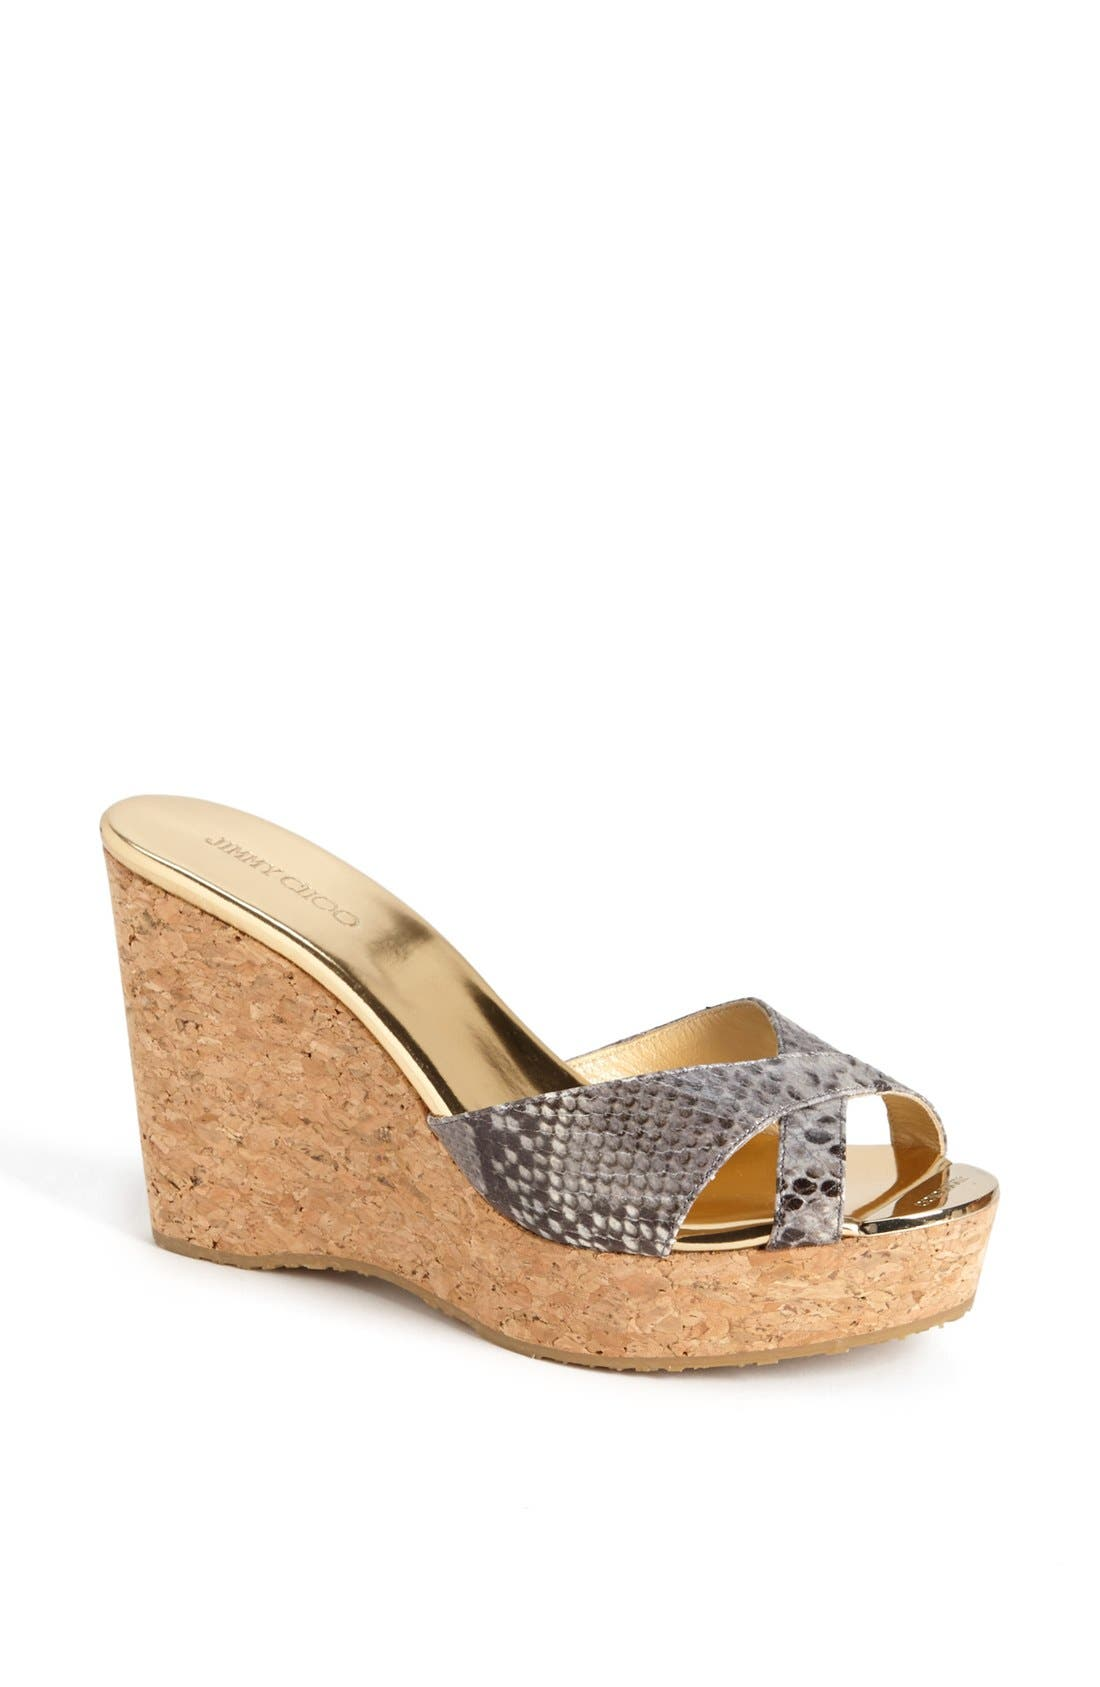 Main Image - Jimmy Choo 'Pandora' Wedge Sandal